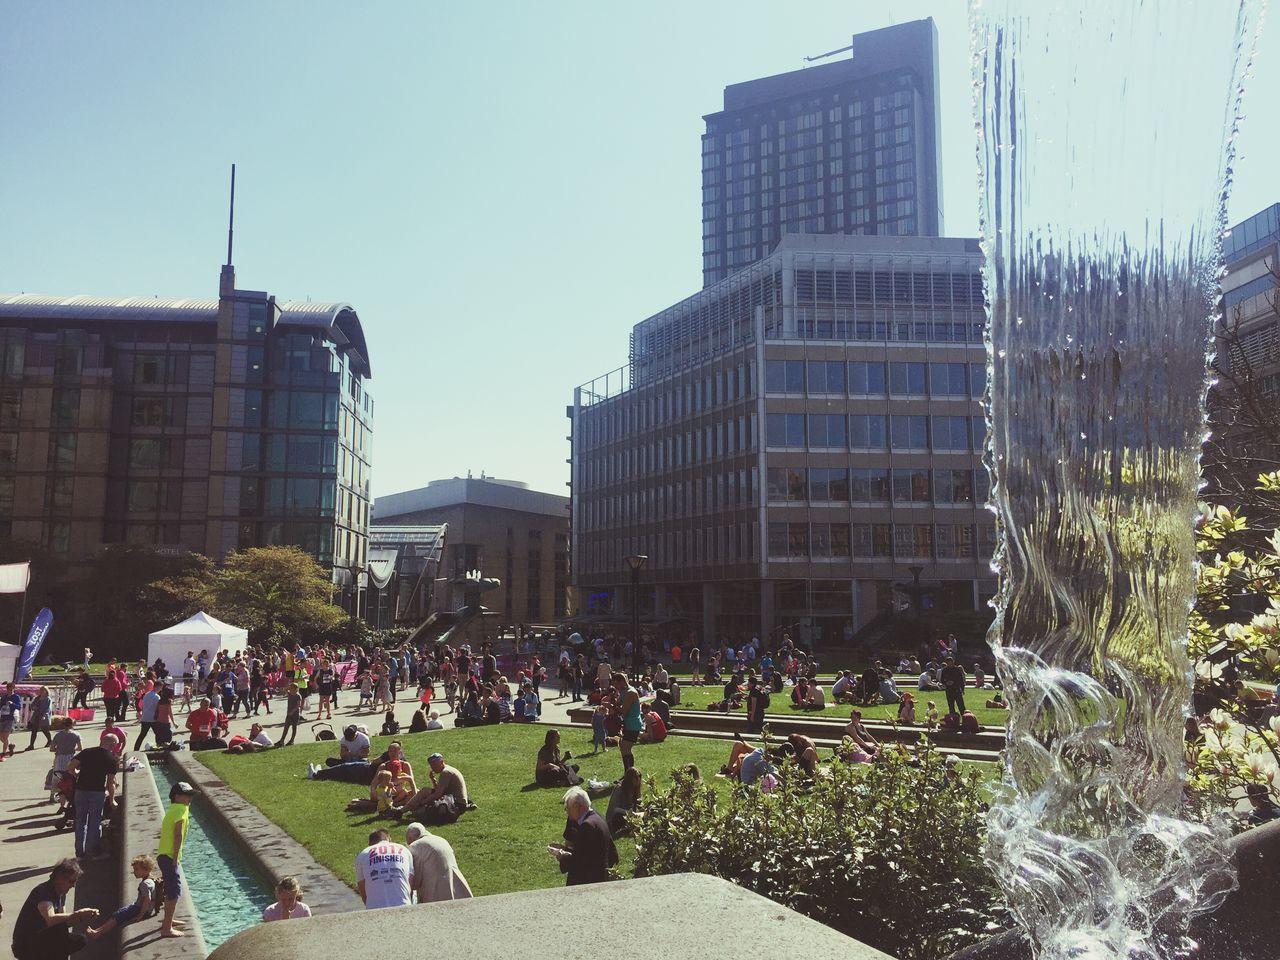 architecture, building exterior, built structure, large group of people, city, modern, skyscraper, outdoors, day, real people, grass, crowd, sky, people